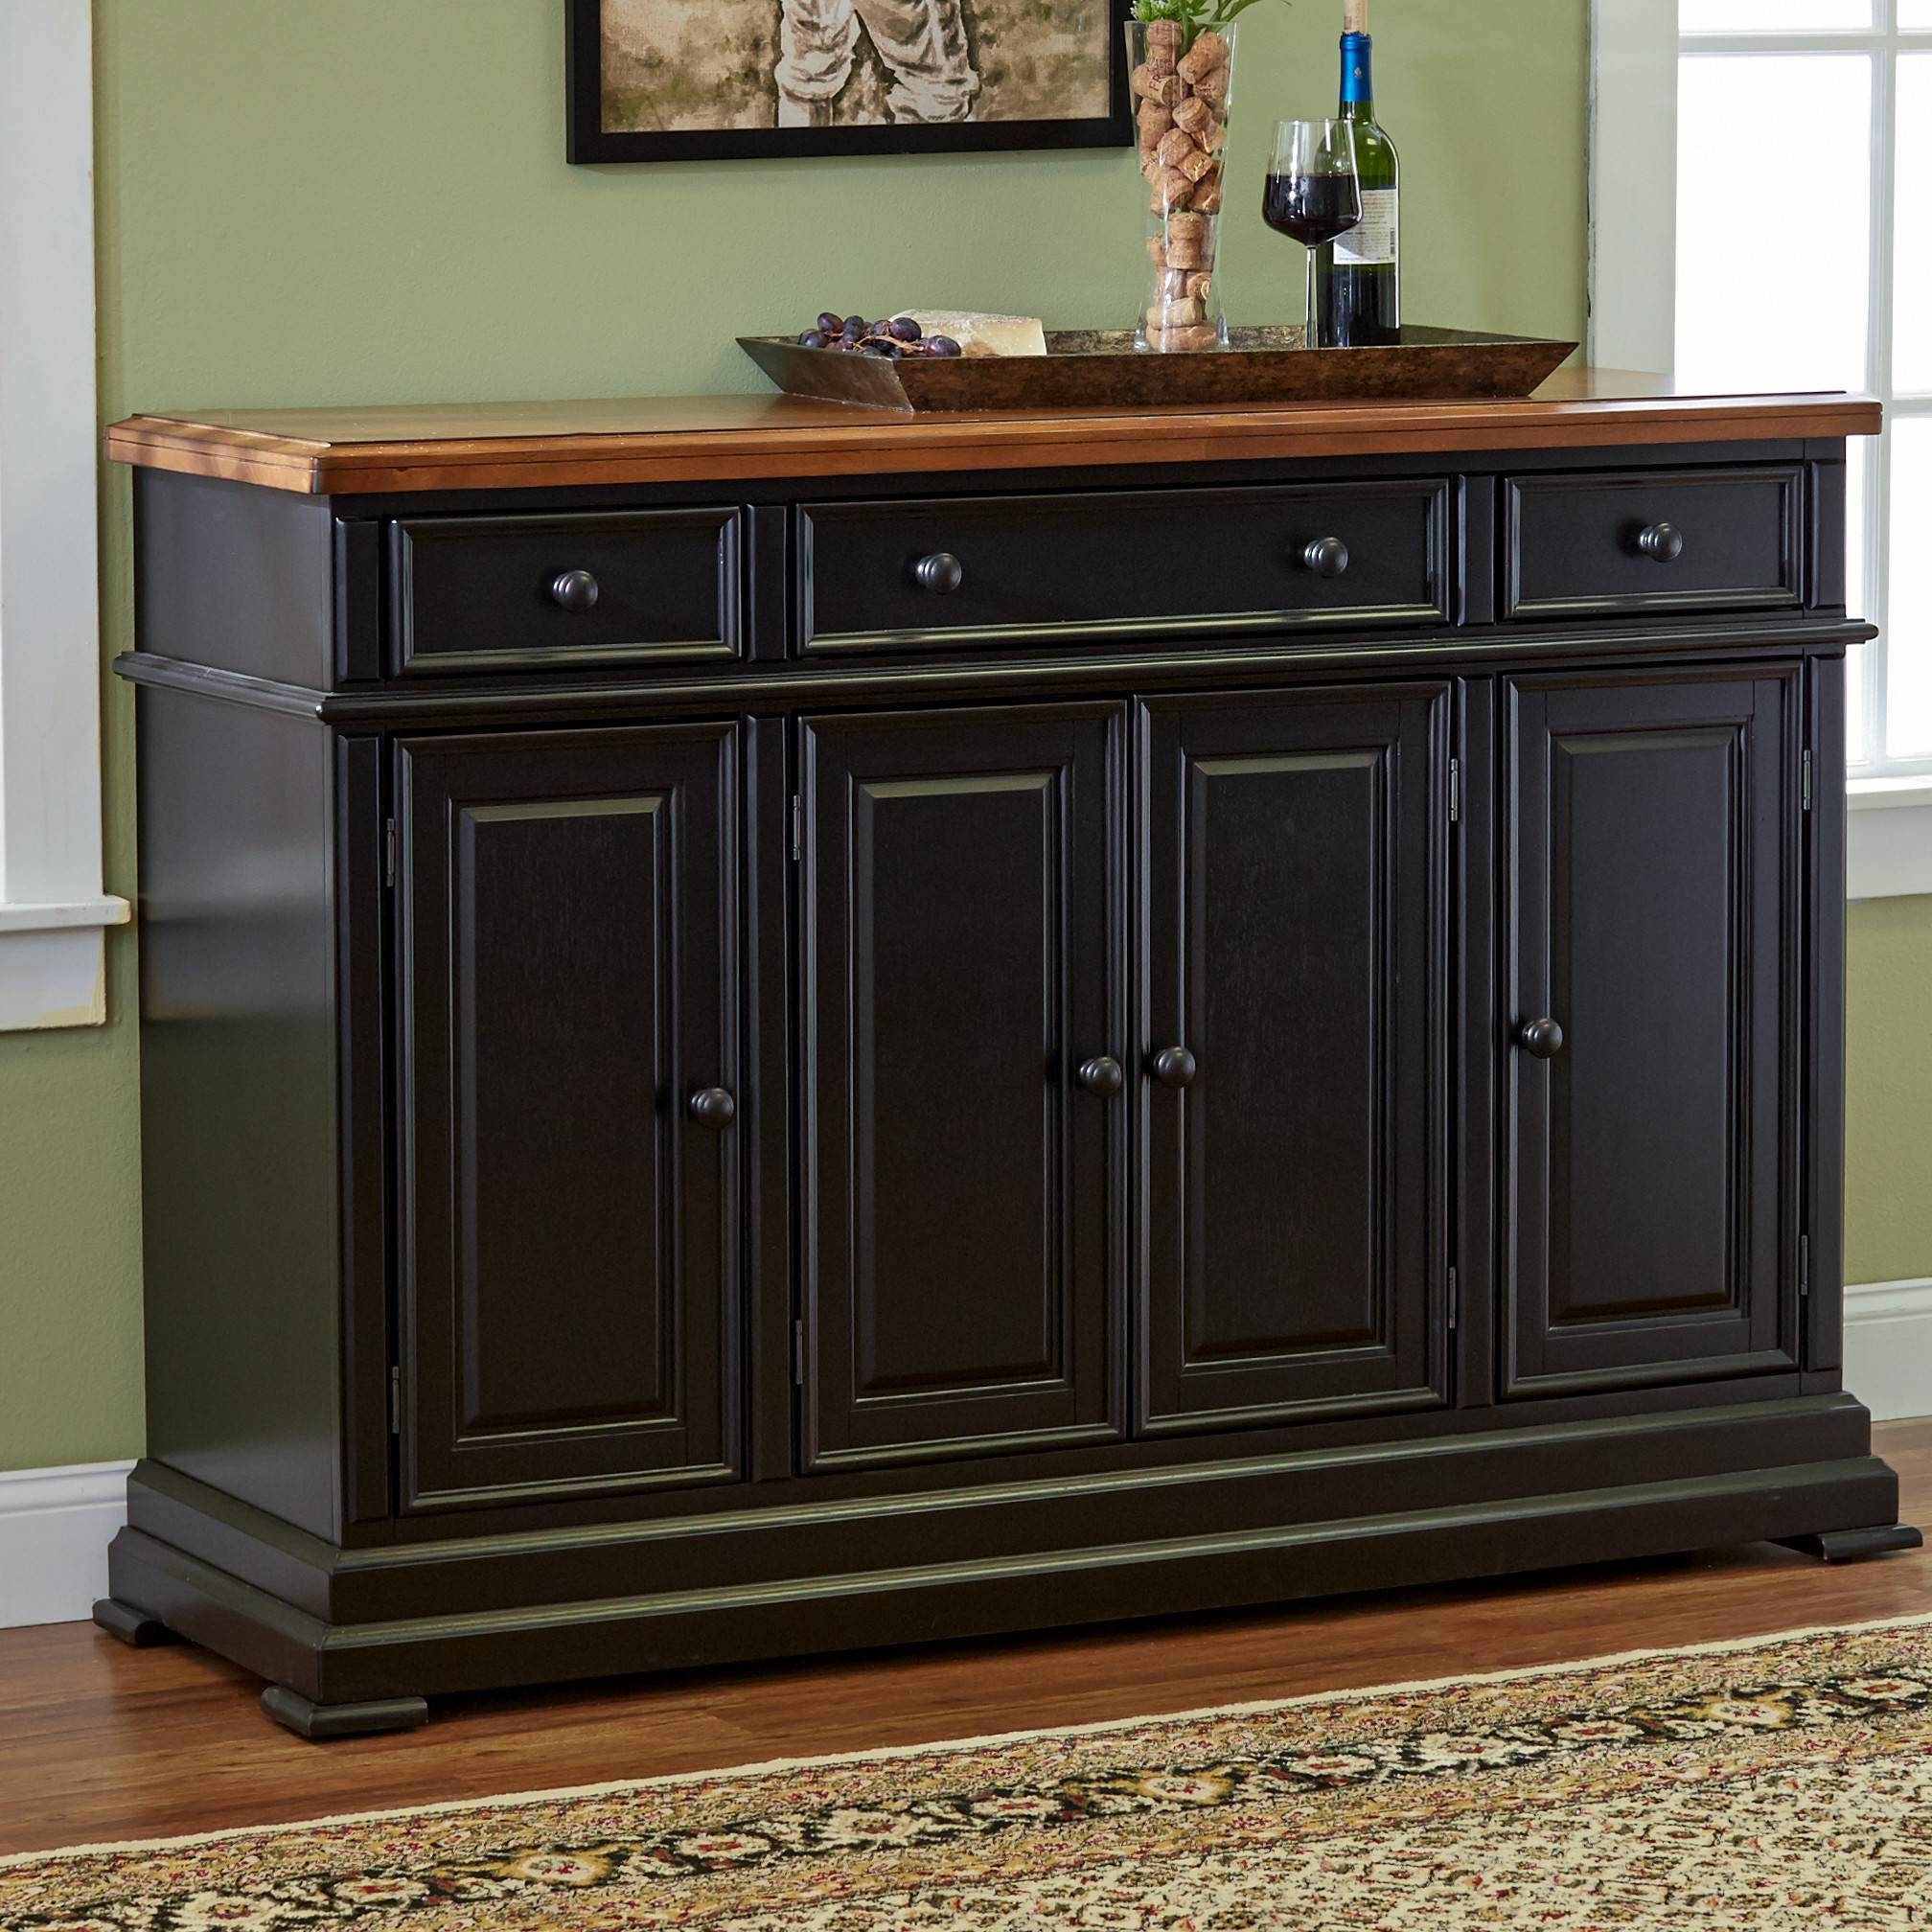 Dining Room Buffet Cabinet Sideboards Buffets Storage Servers 17 Regarding Black  Dining Room Sideboards (Image